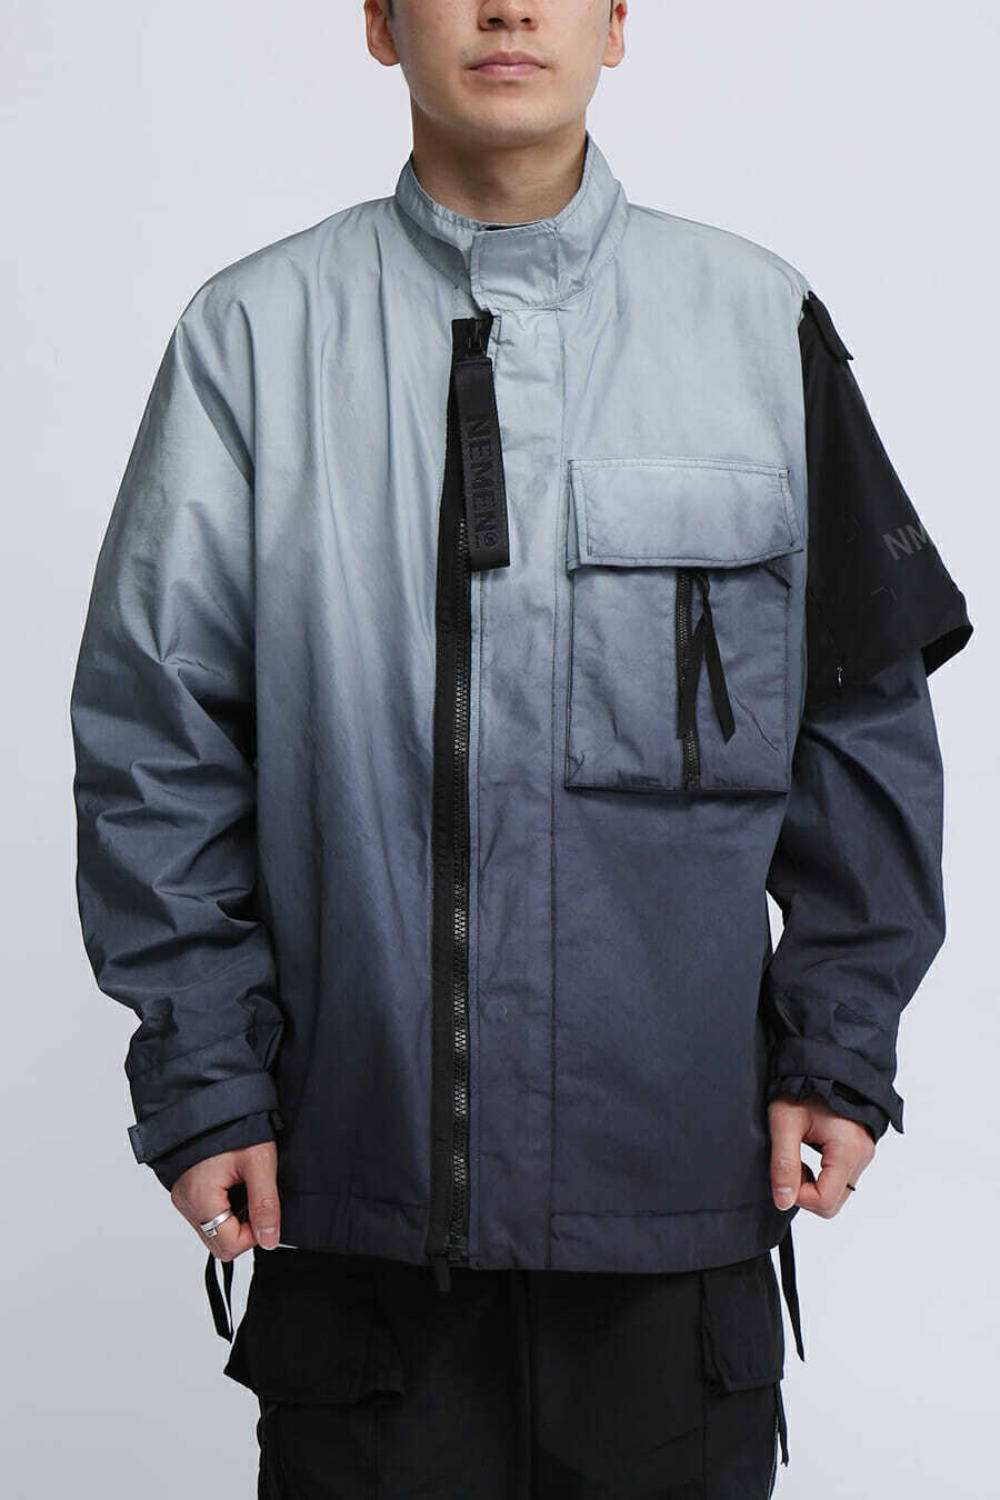 WOVEN ZEPHYR 3L JACKET DIPPING GREY